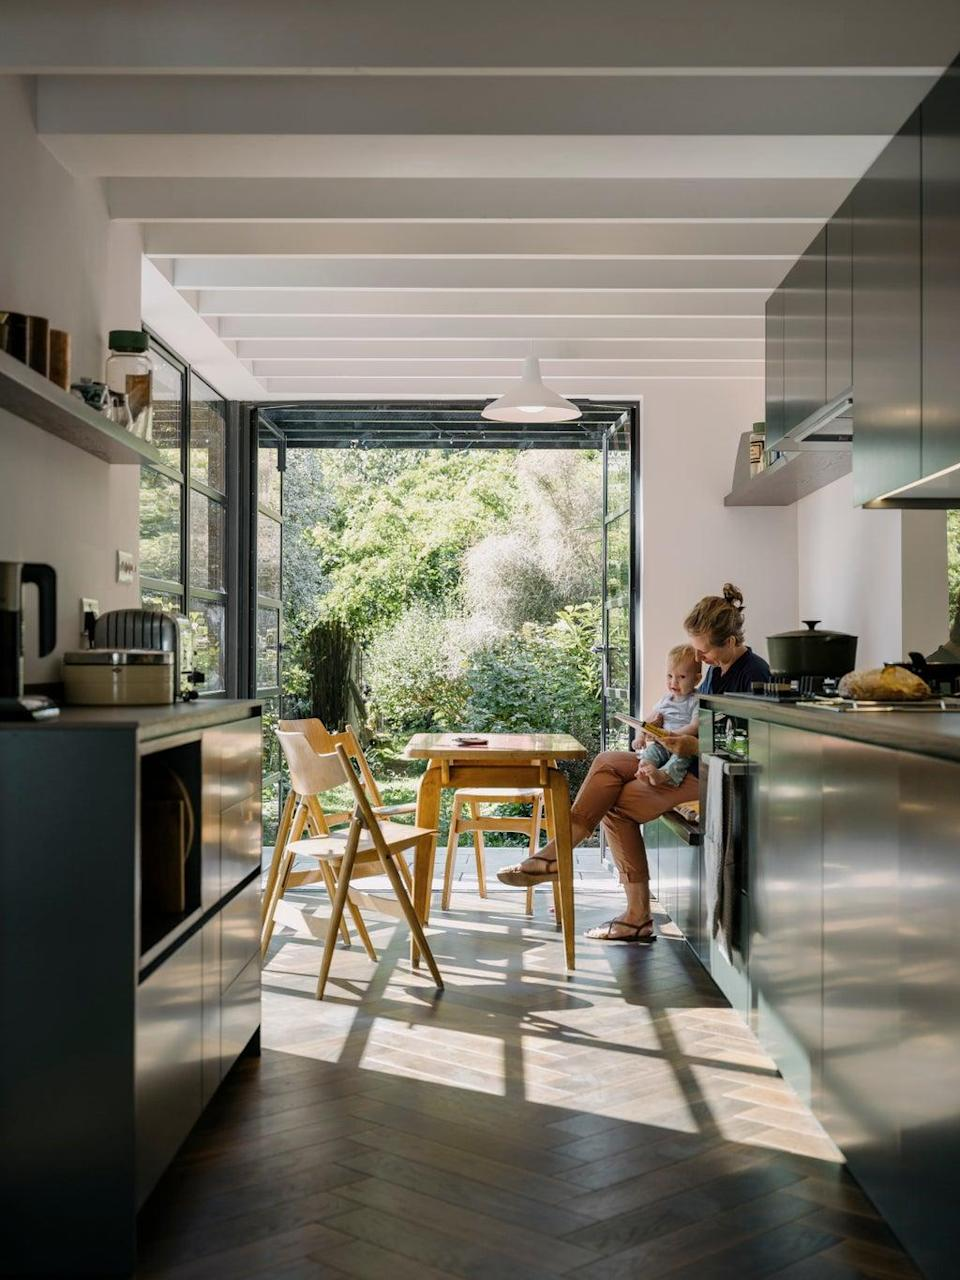 Architect Joanna Coleman admires her own handiwork in the light of the newly opened kitchen-diner (Tim Crocker)